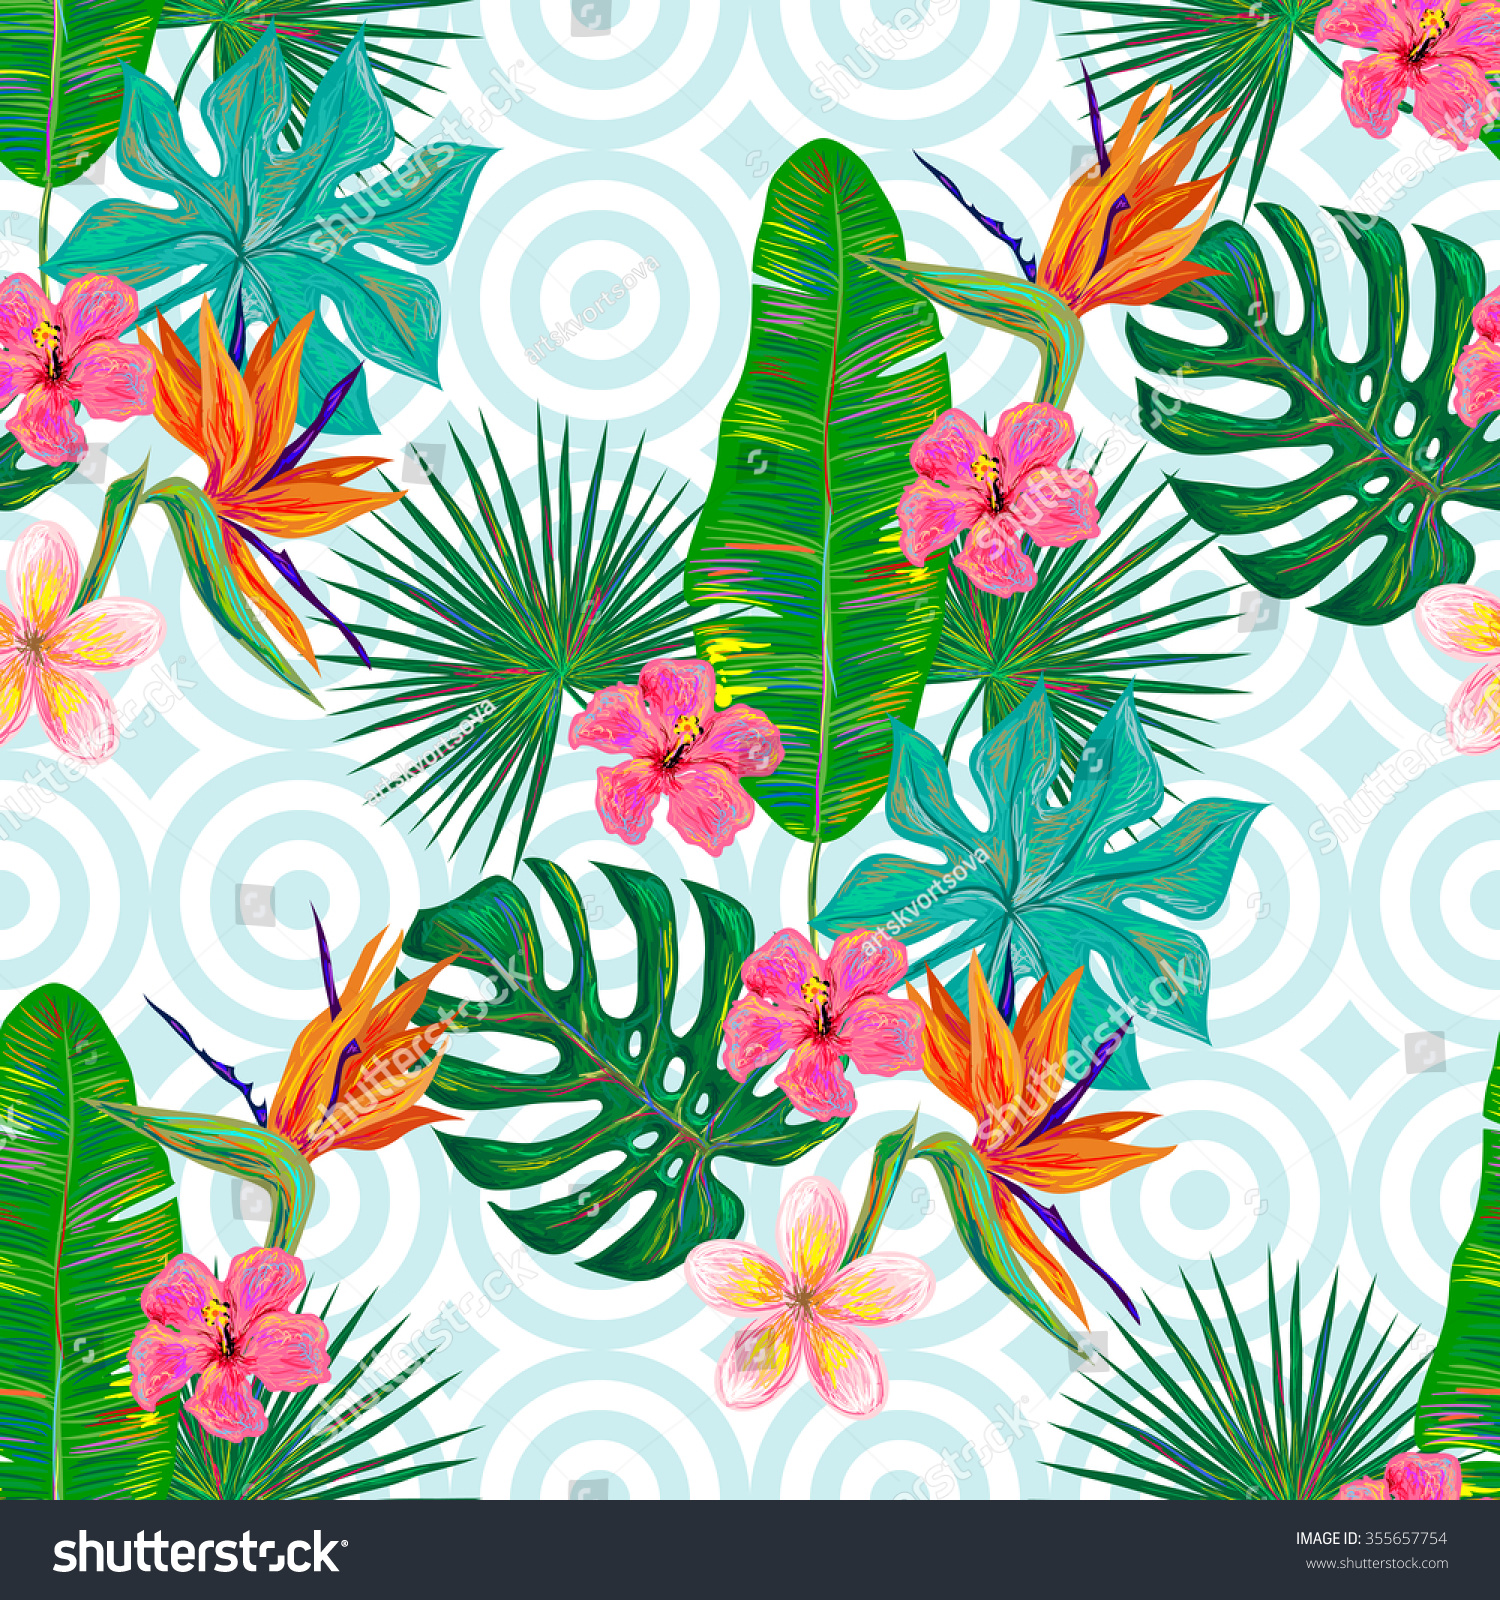 tropical wallpaper pattern - photo #20